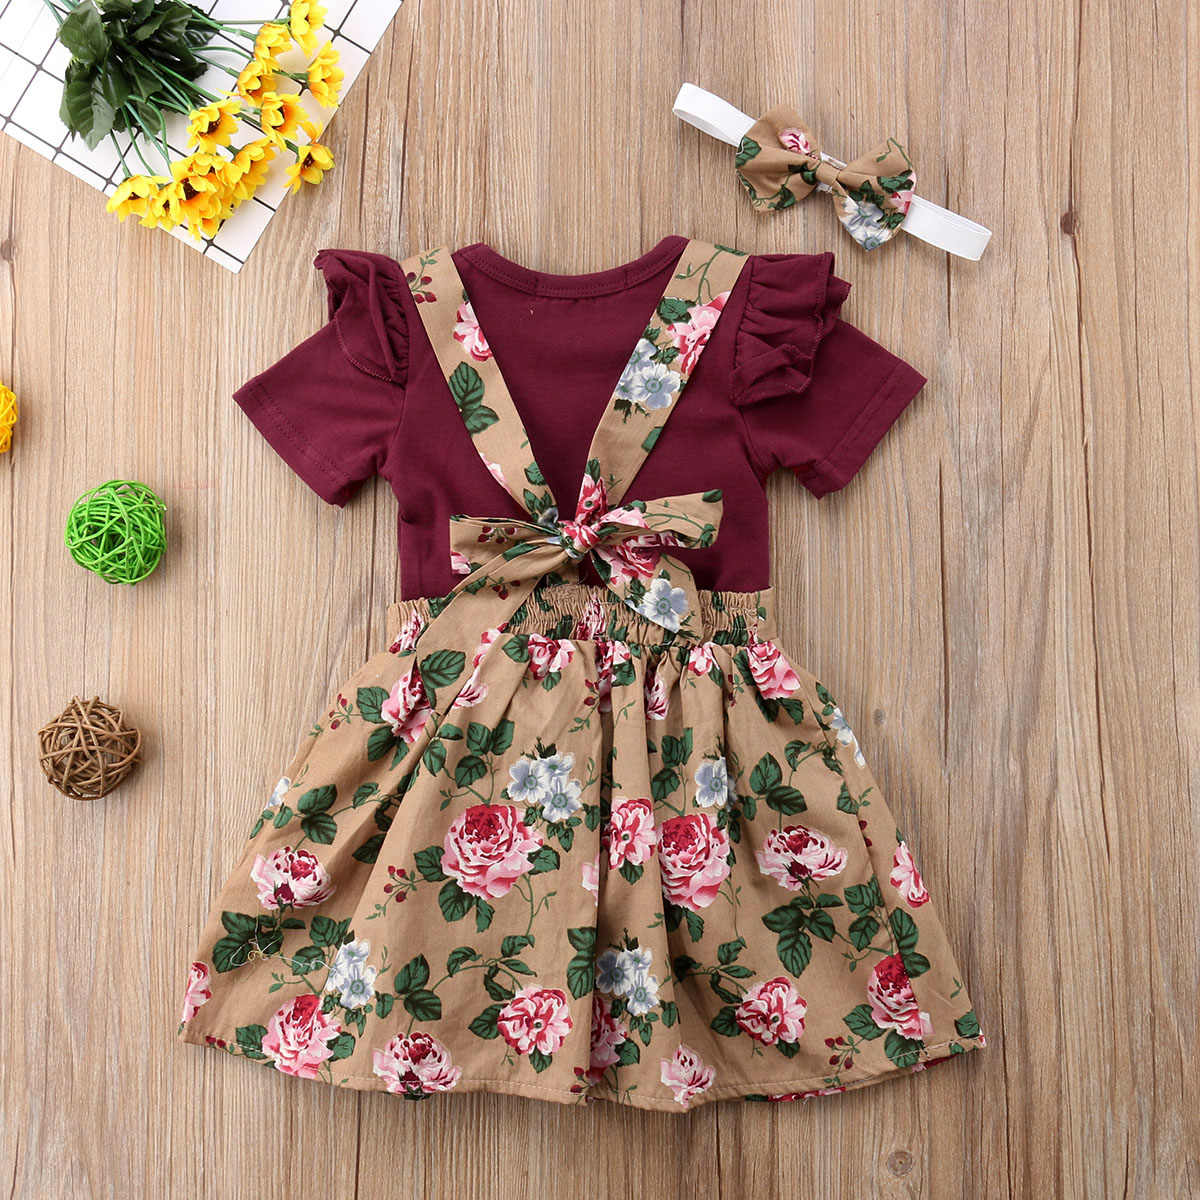 Cute Baby Girl Romper Dress Yellow Floral Baby Girl Clothes Baby Girl Outfit